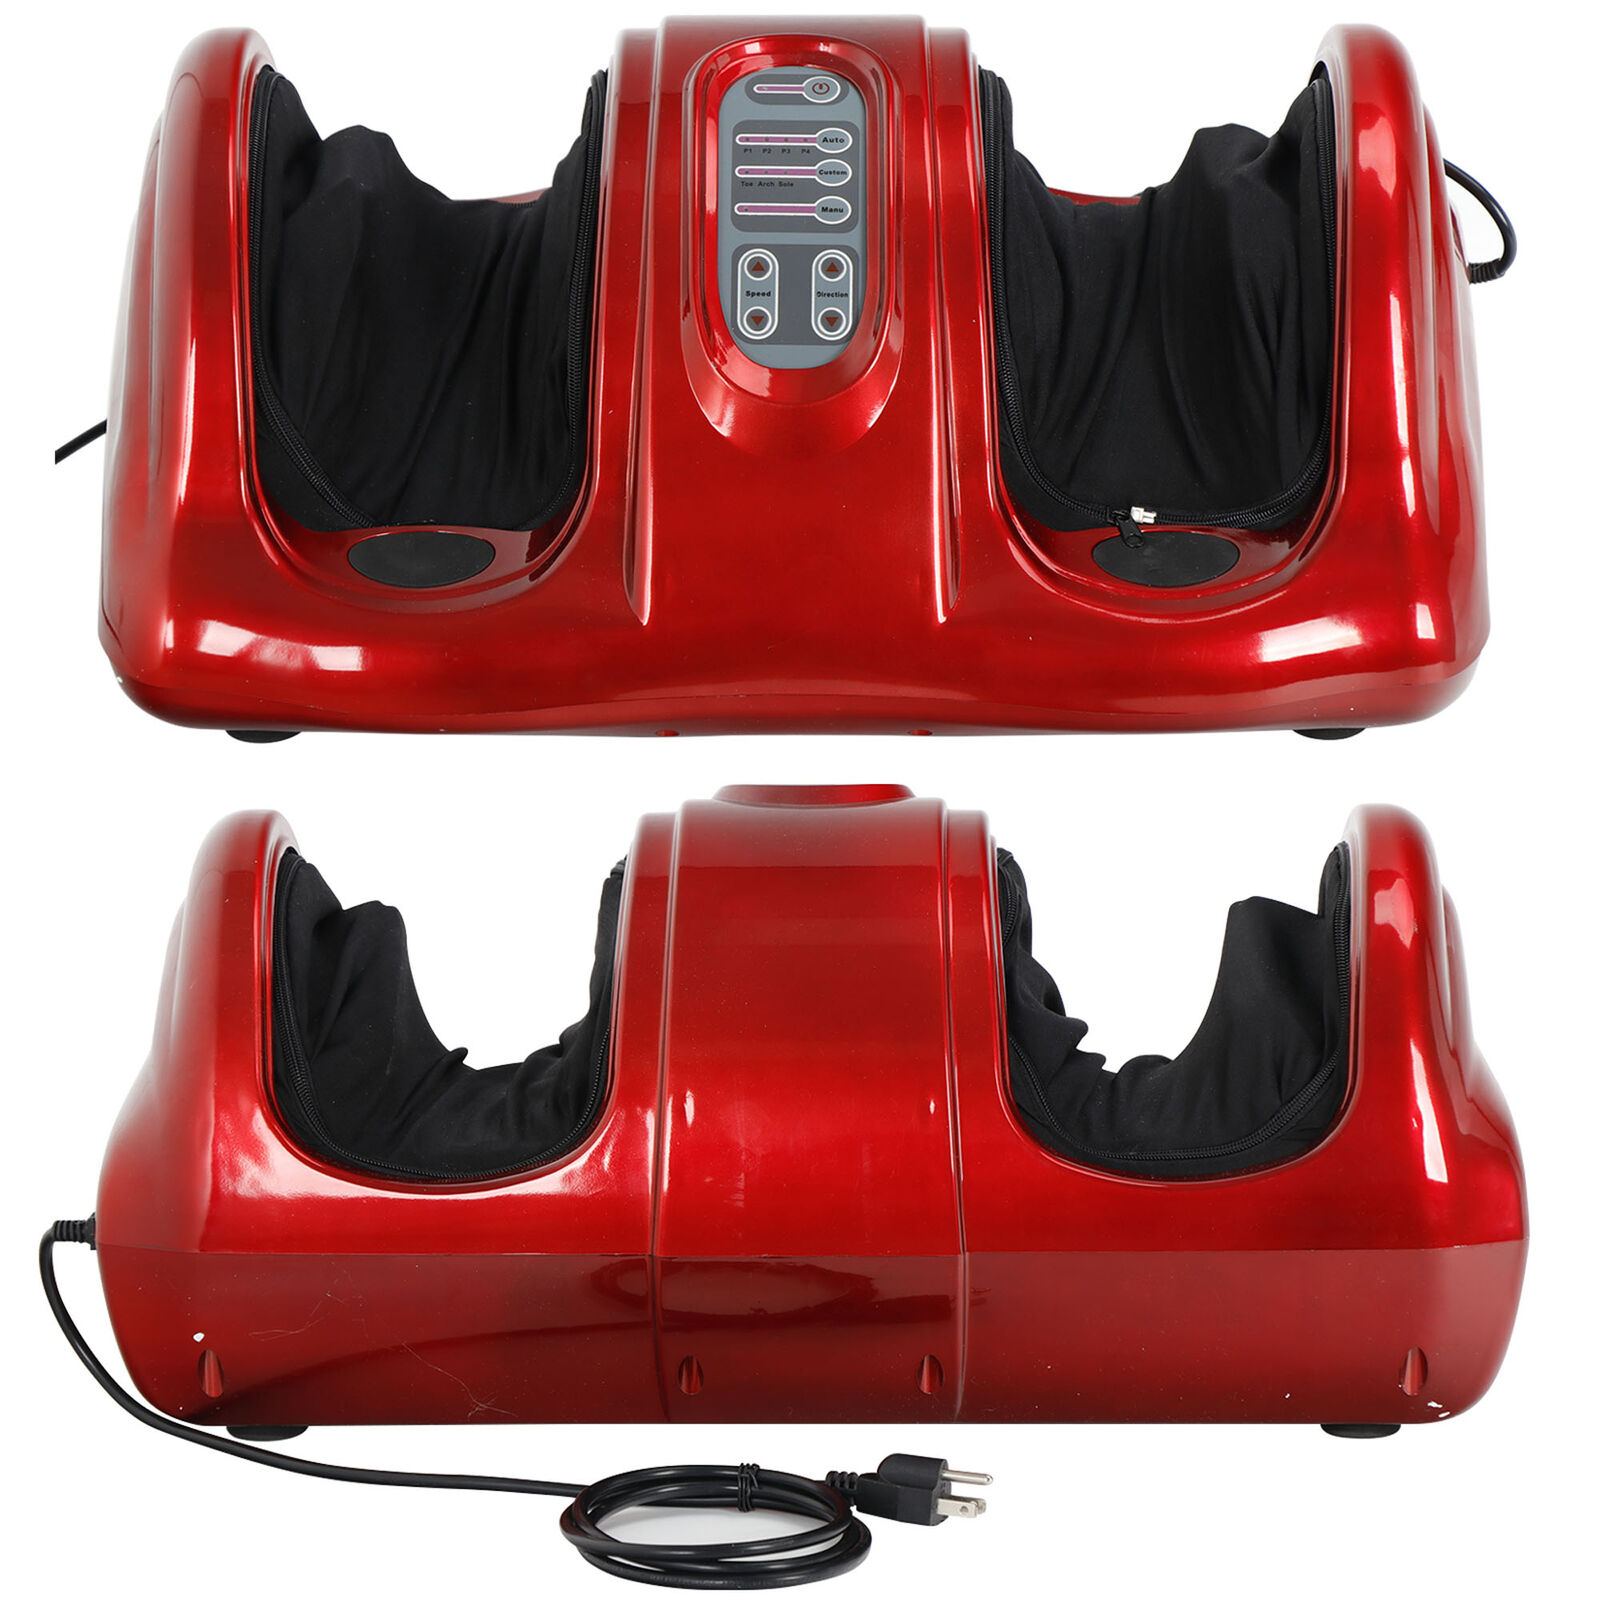 Shiatsu Foot Massager Switchable Kneading & Rolling Leg Calf